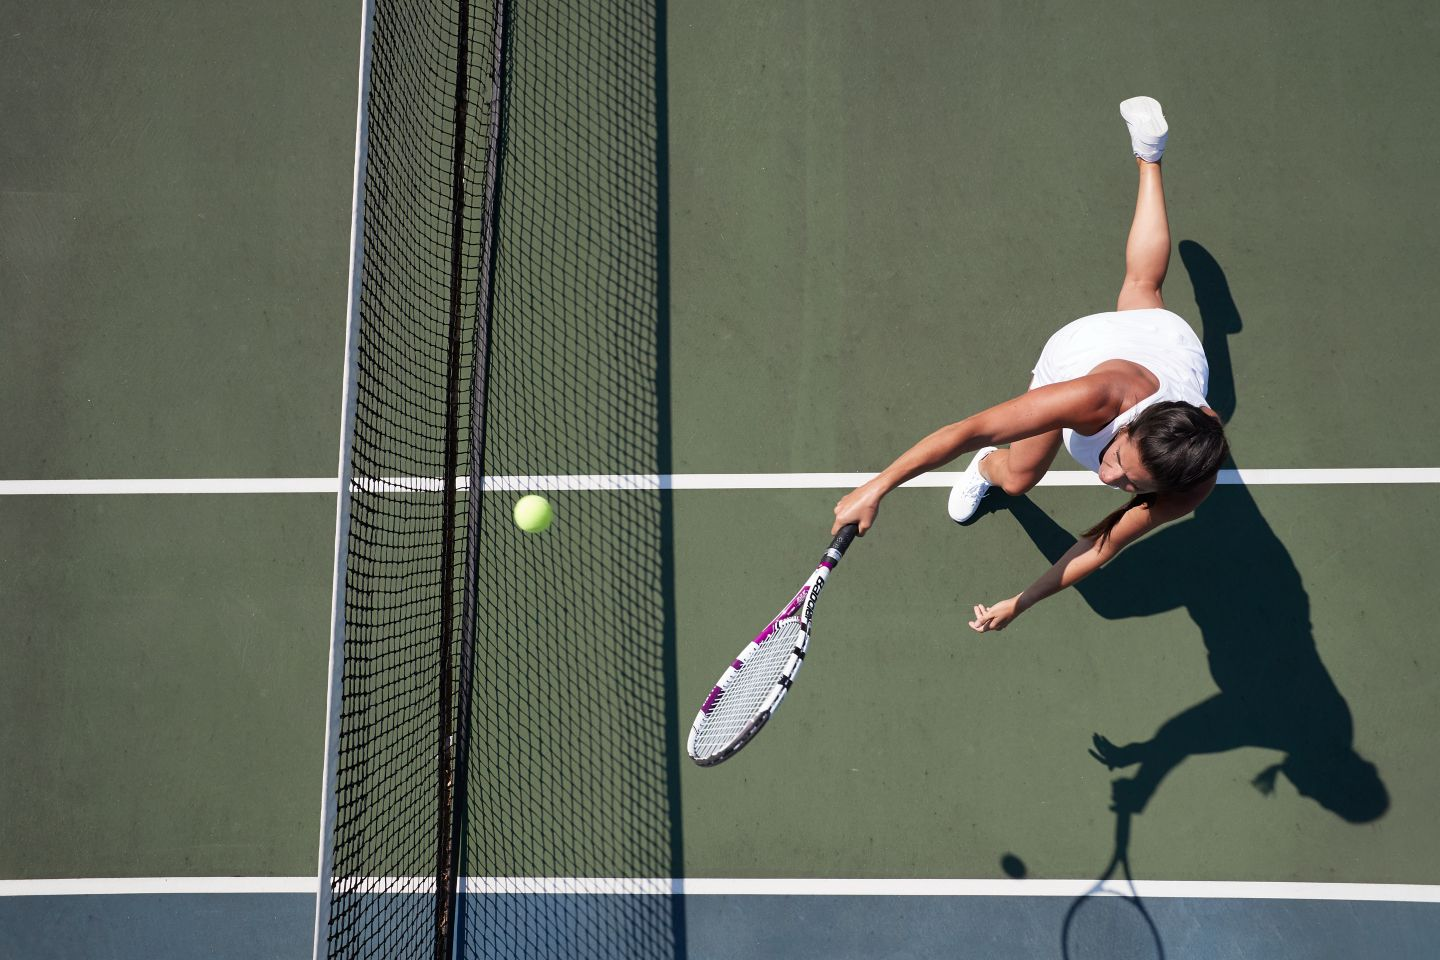 Overhead image of a tennis player